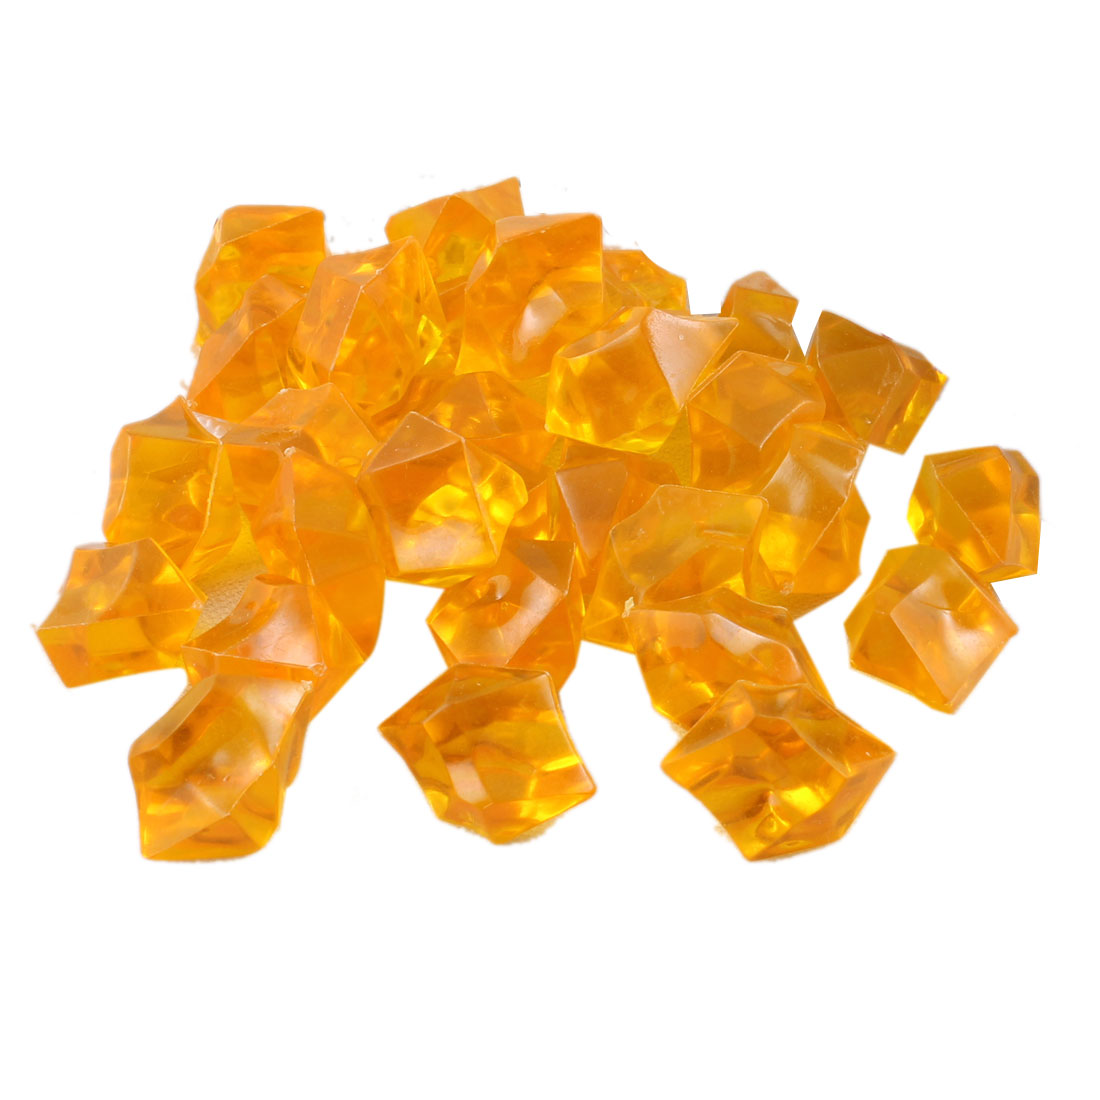 "30pcs Orange Polygon Faux Crystal Stones Decor 1"" Long for Aquarium"